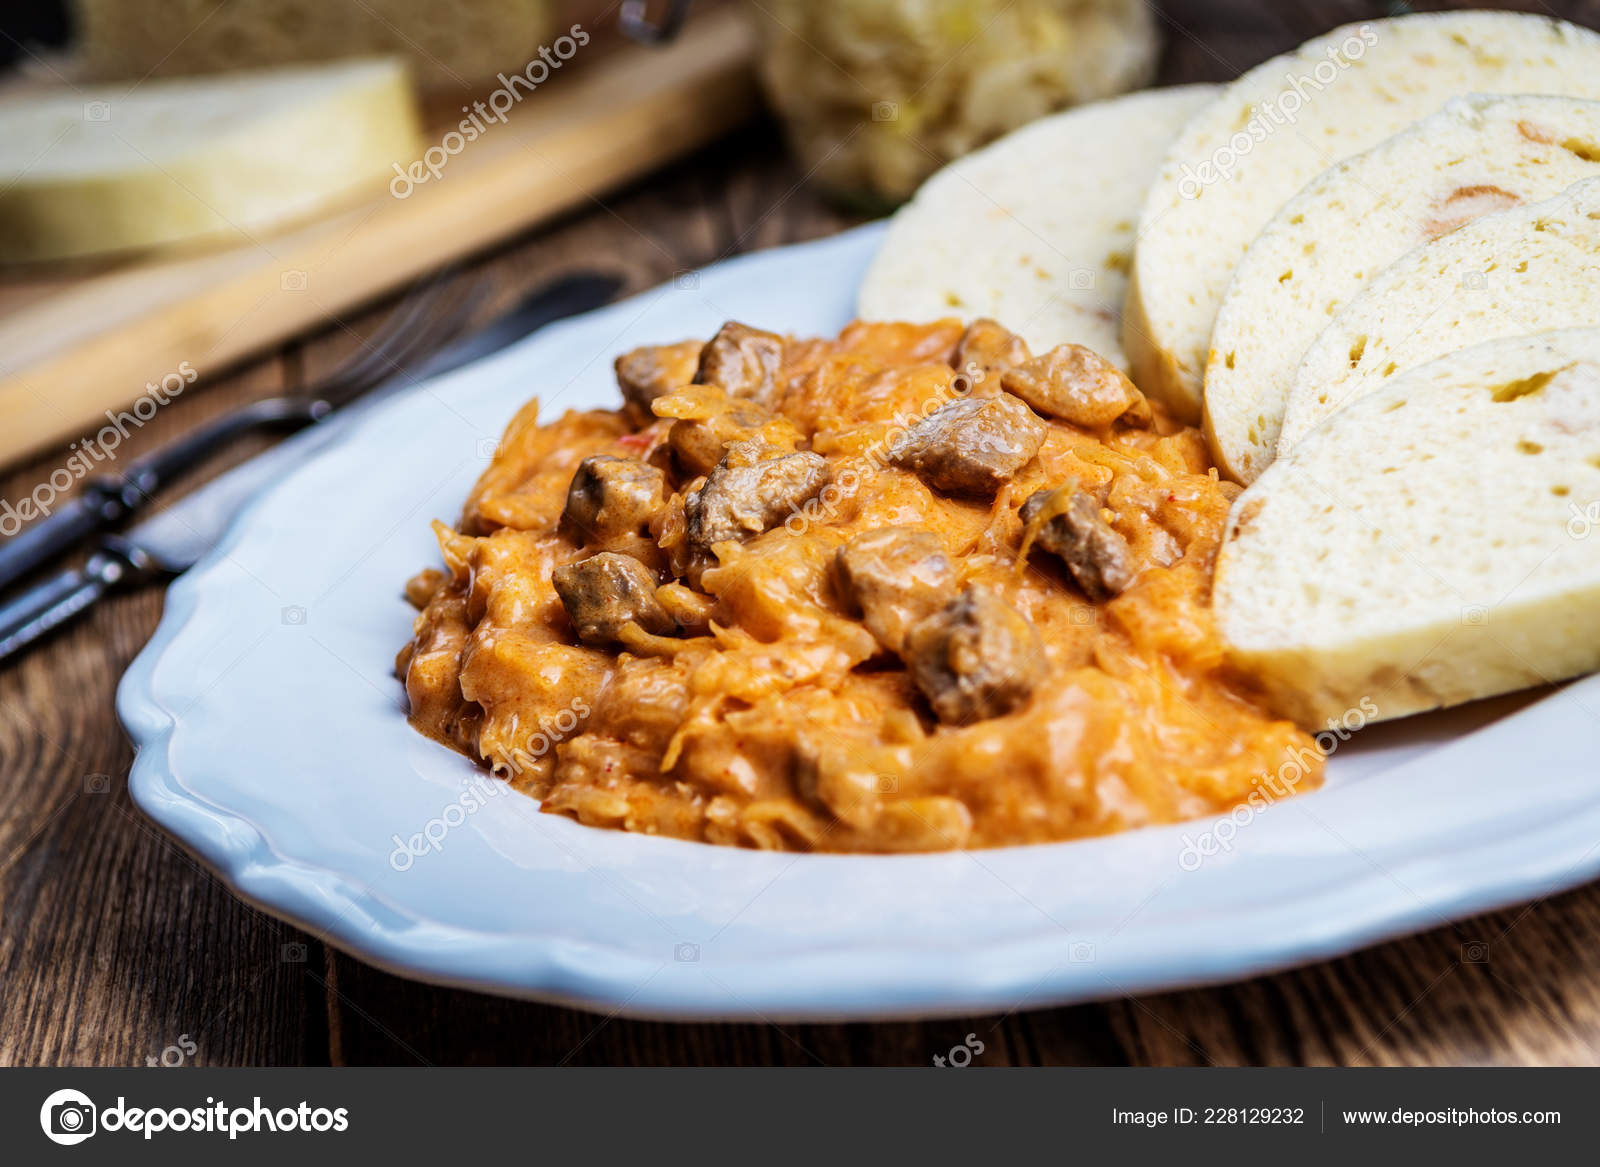 Traditional Hungarian Goulash Szeged Gulyasz Pork Pickled White Sauerkraut Dumplings Stock Photo Image By C Stockfotocz2 228129232